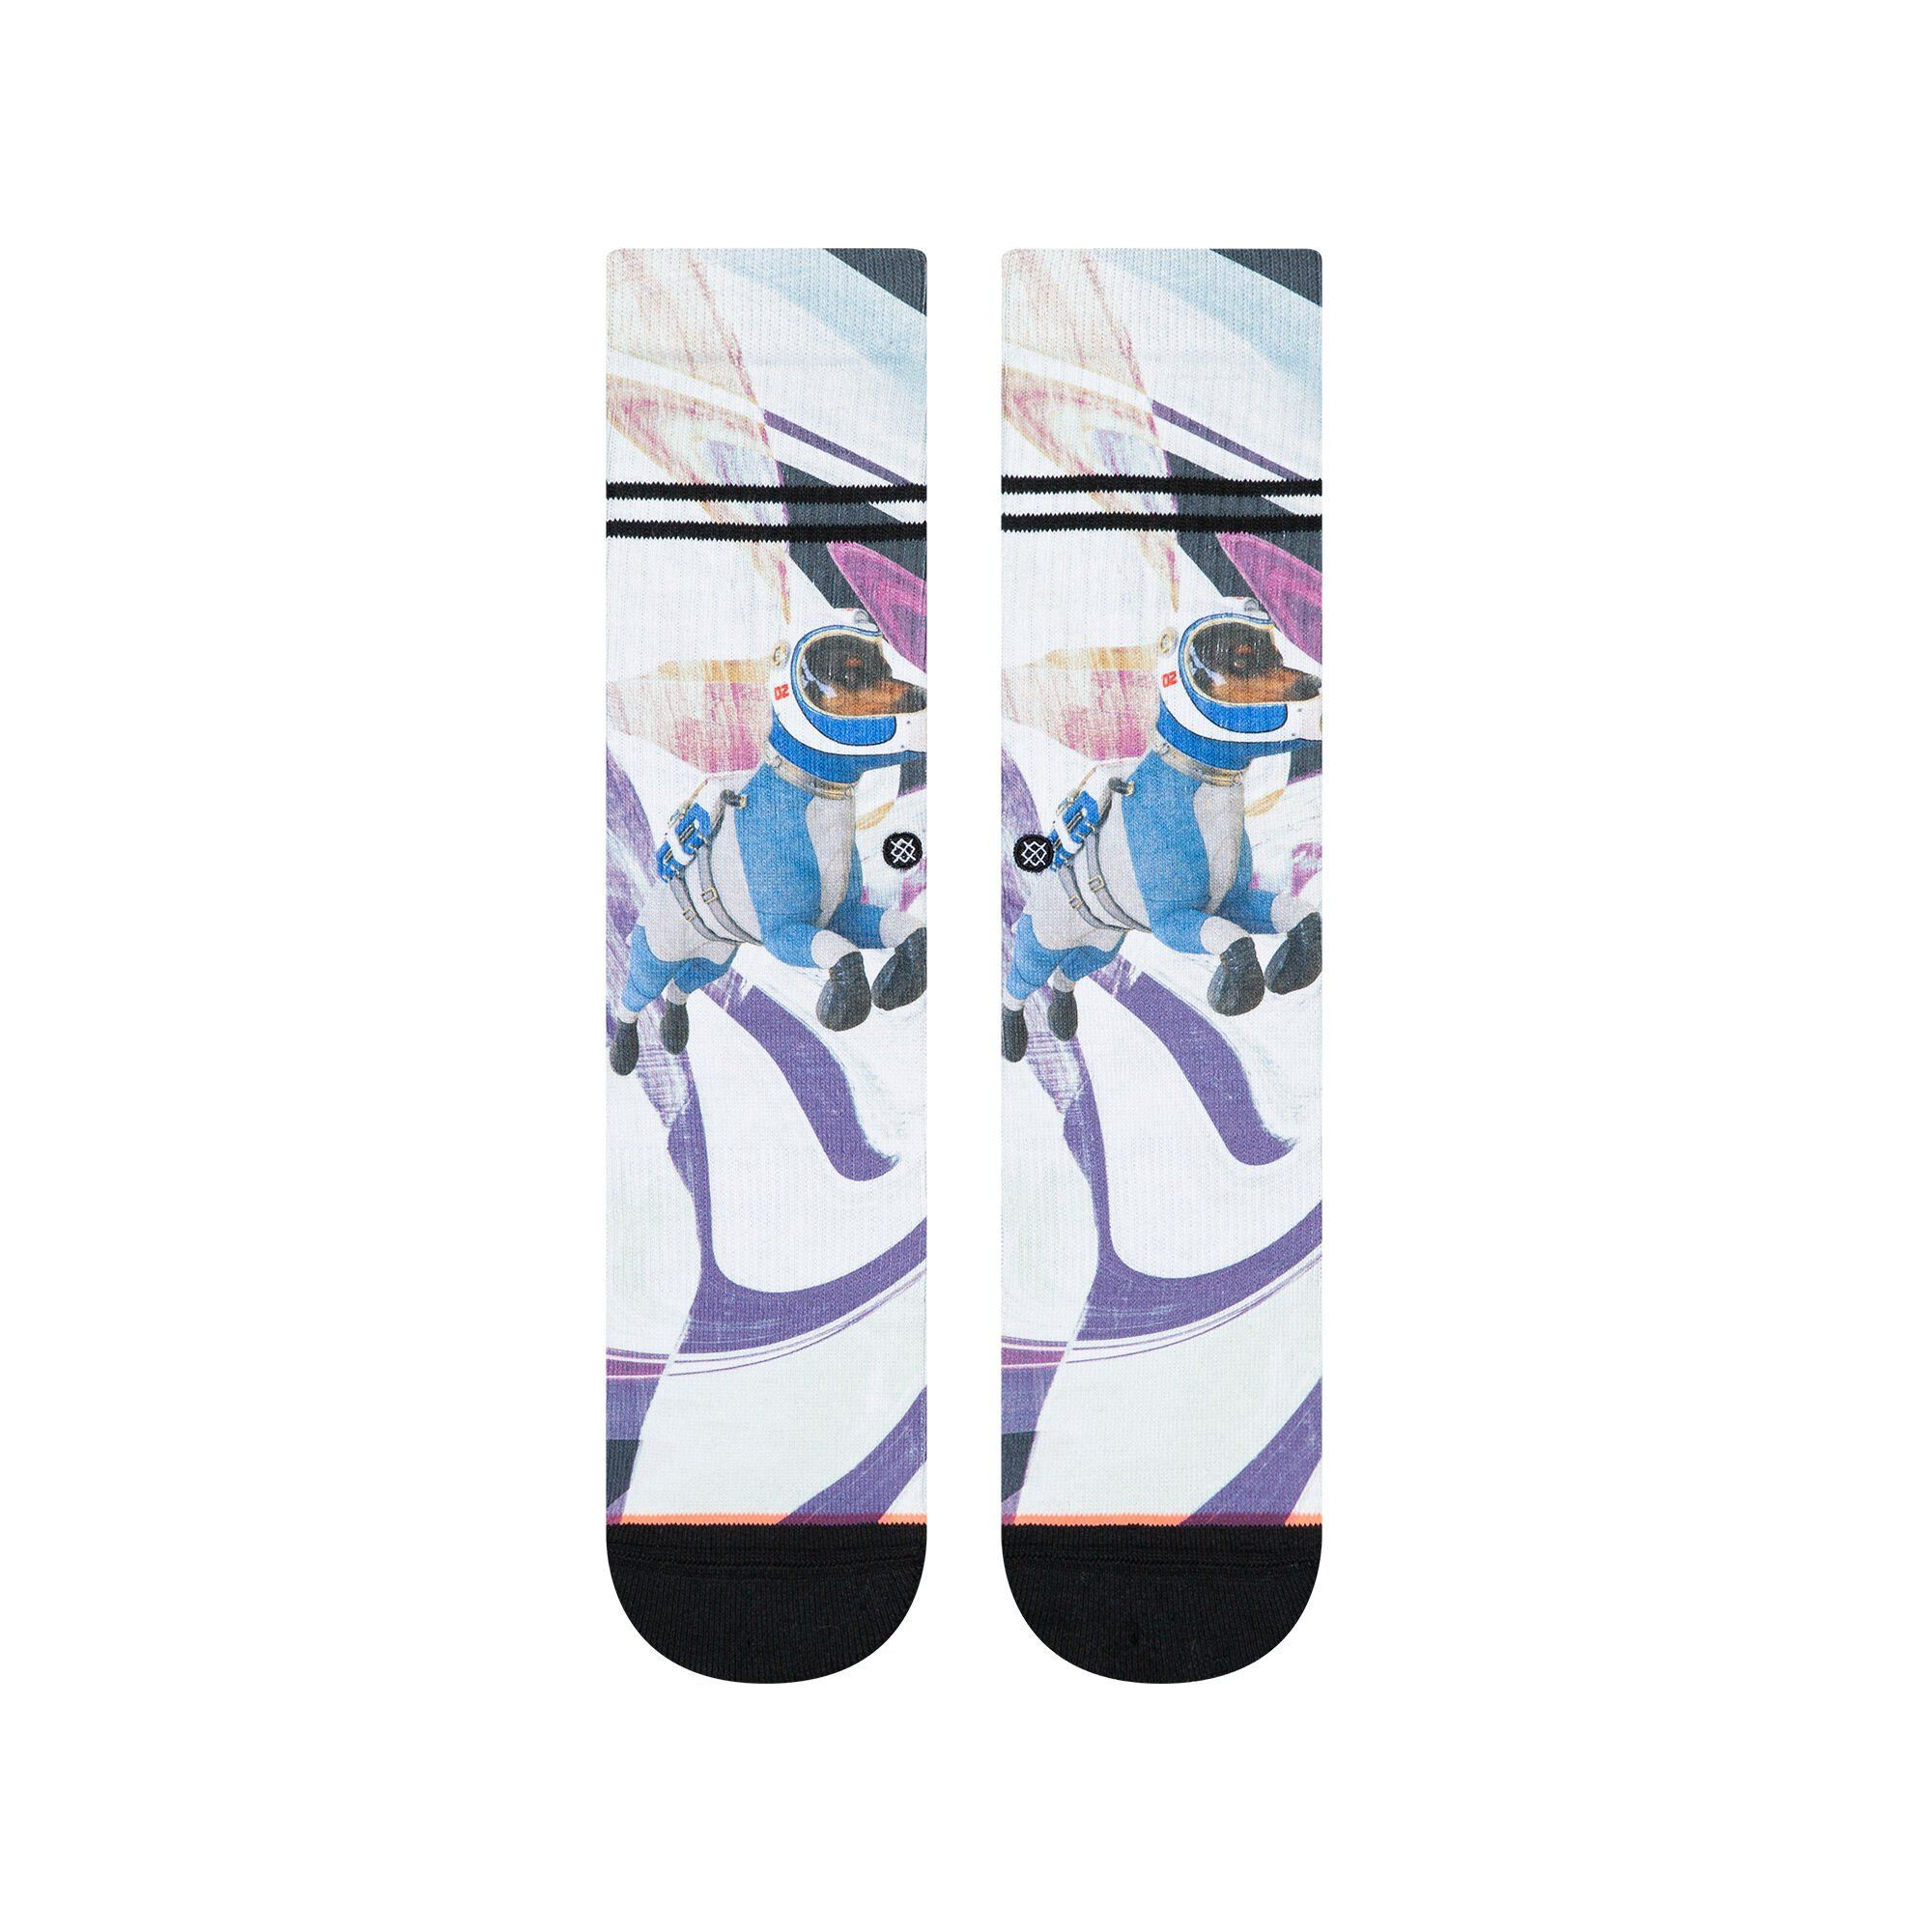 Stance - Astrodog Crew Socks | Women's - Knock Your Socks Off